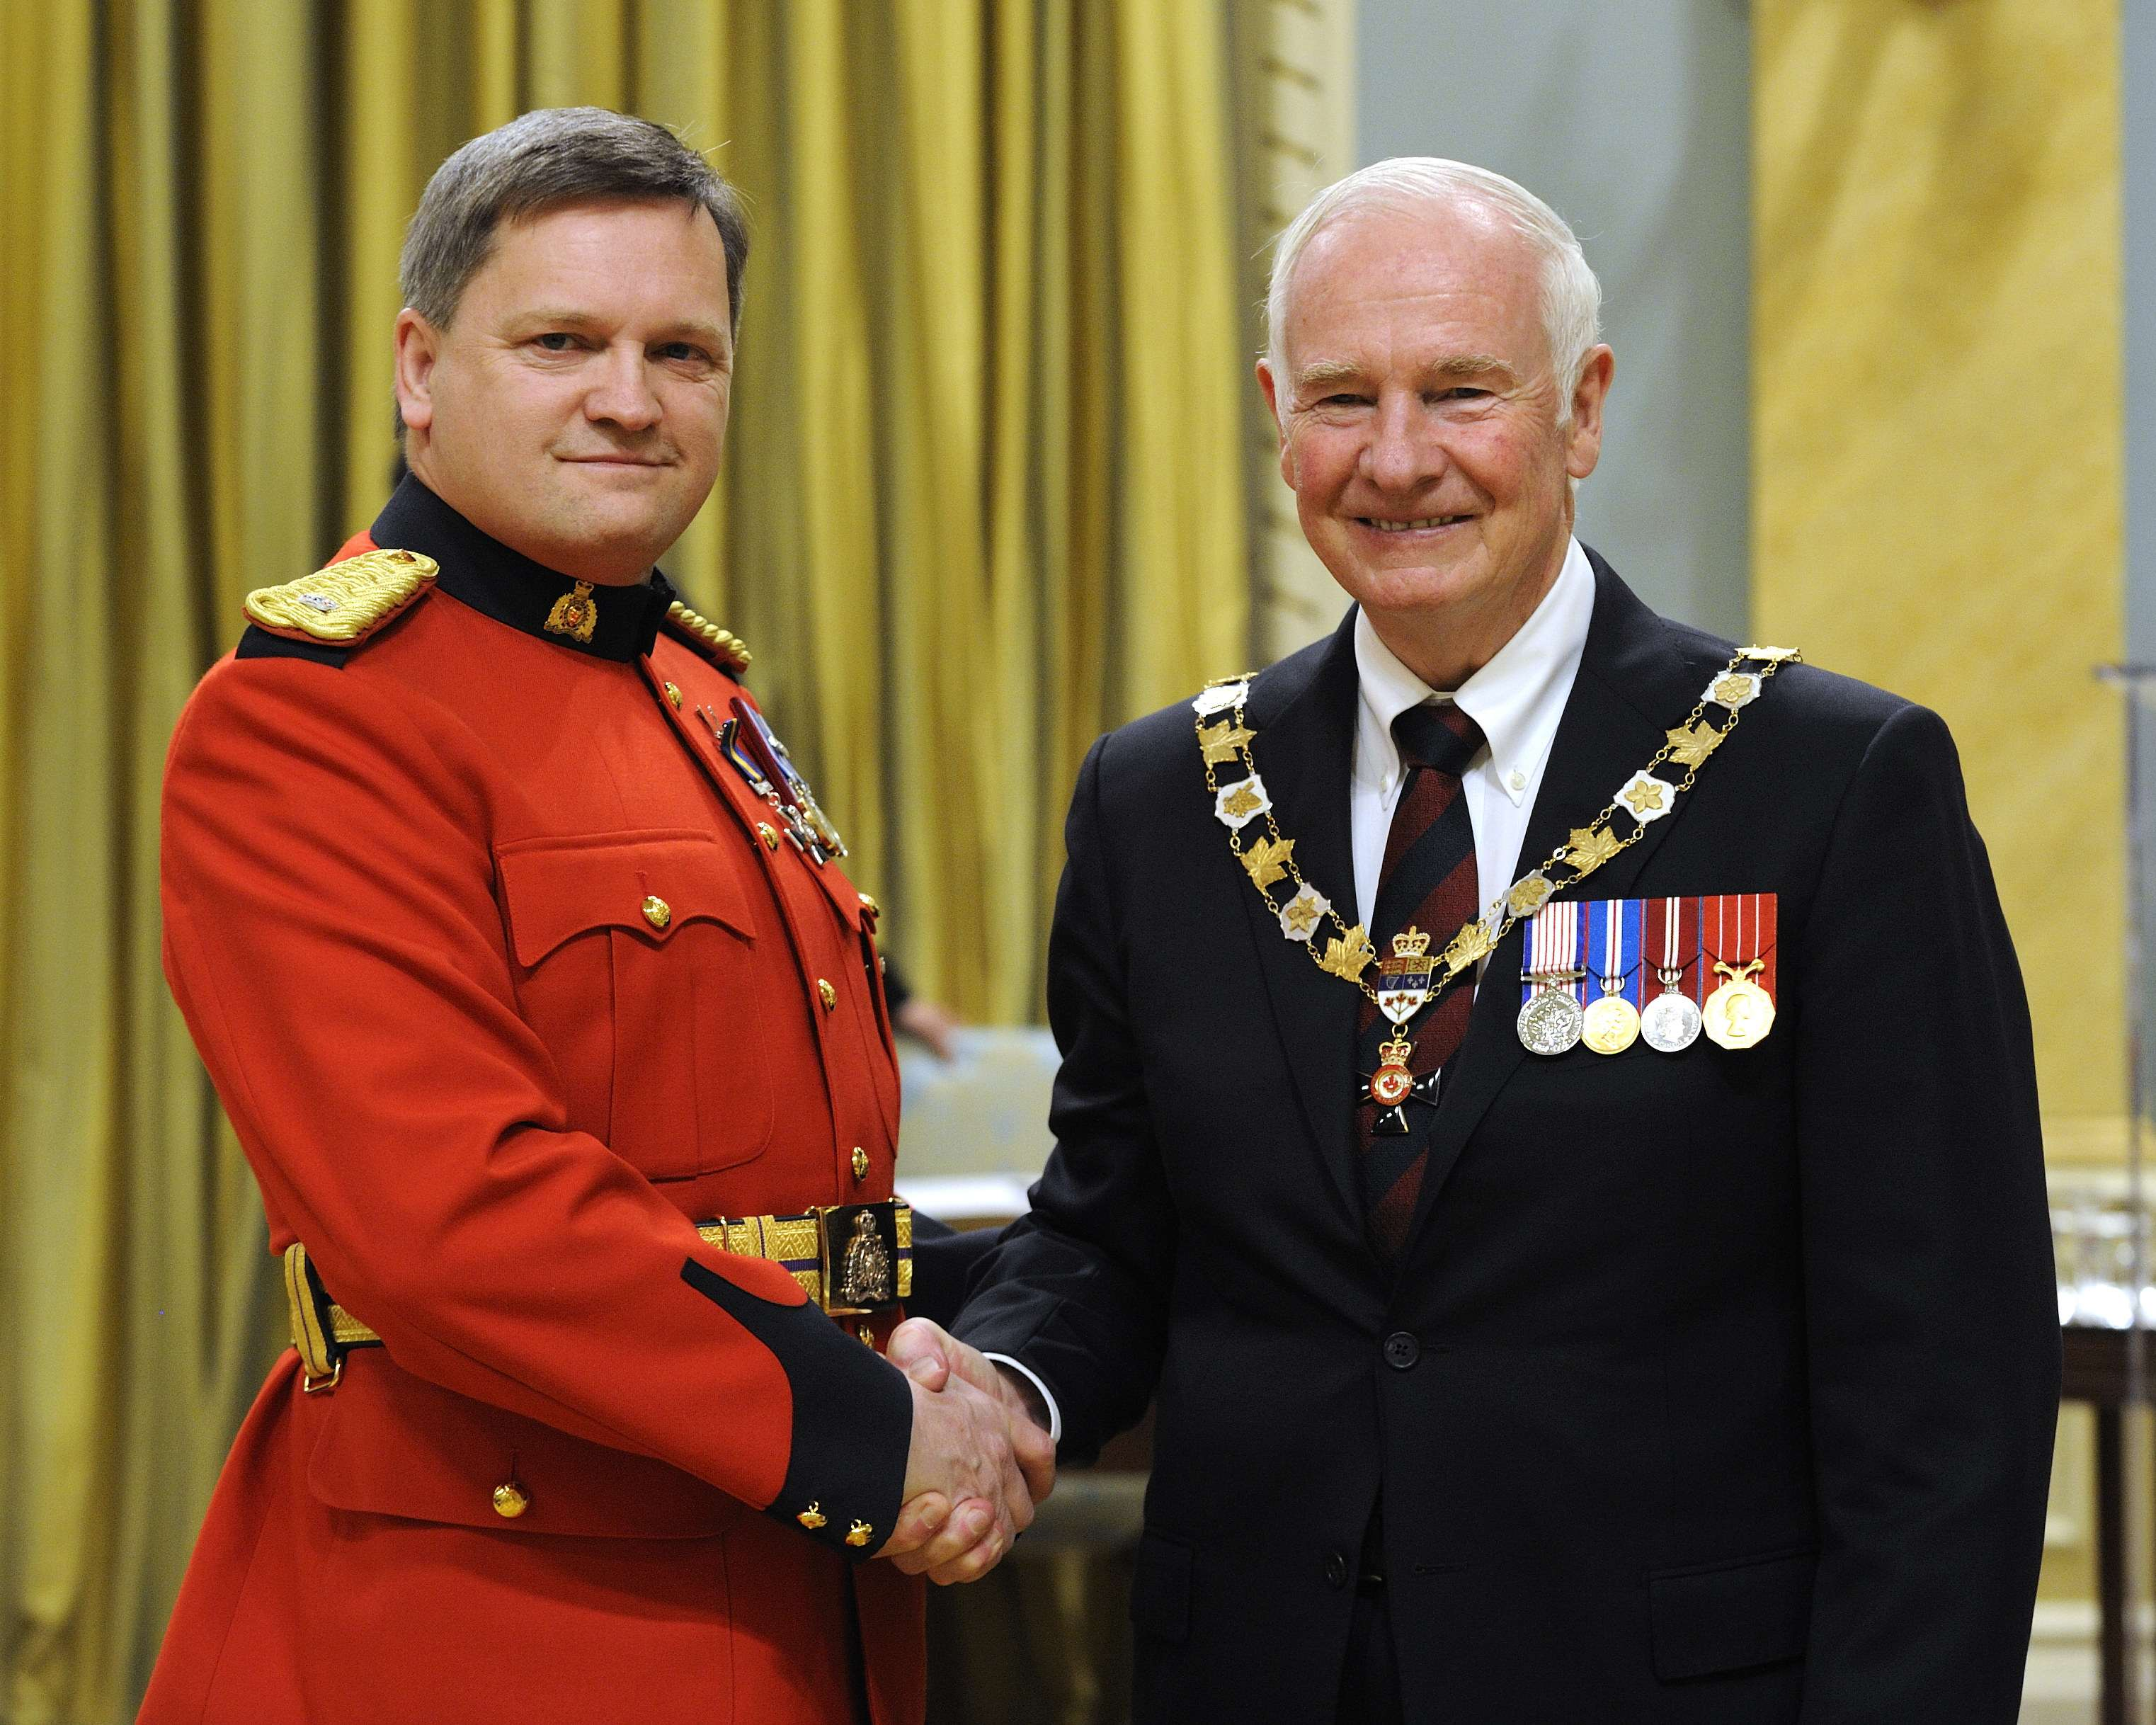 His Excellency presented the Order of Merit of the Police Forces at the Member level (M.O.M.) to Inspector Richard Wayne Votour, M.O.M., of the Royal Canadian Mounted Police, 